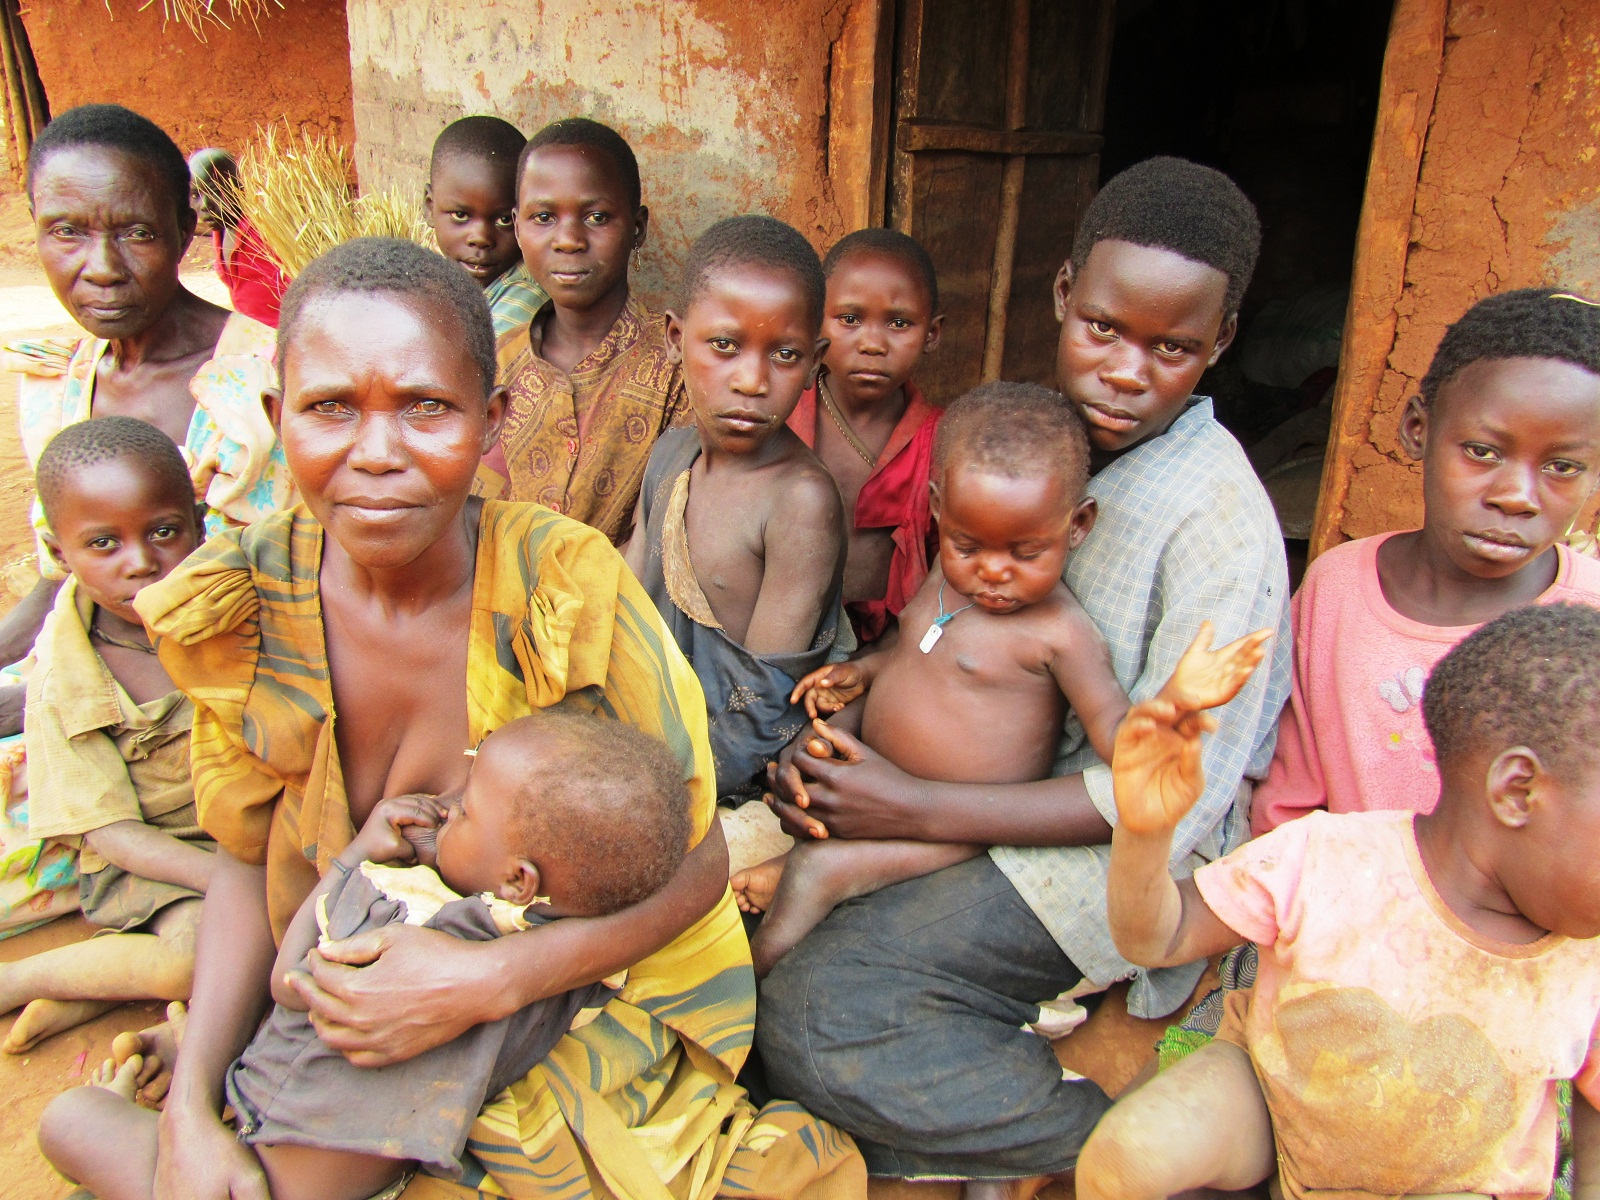 Granny Getulida and family of 14 orphans